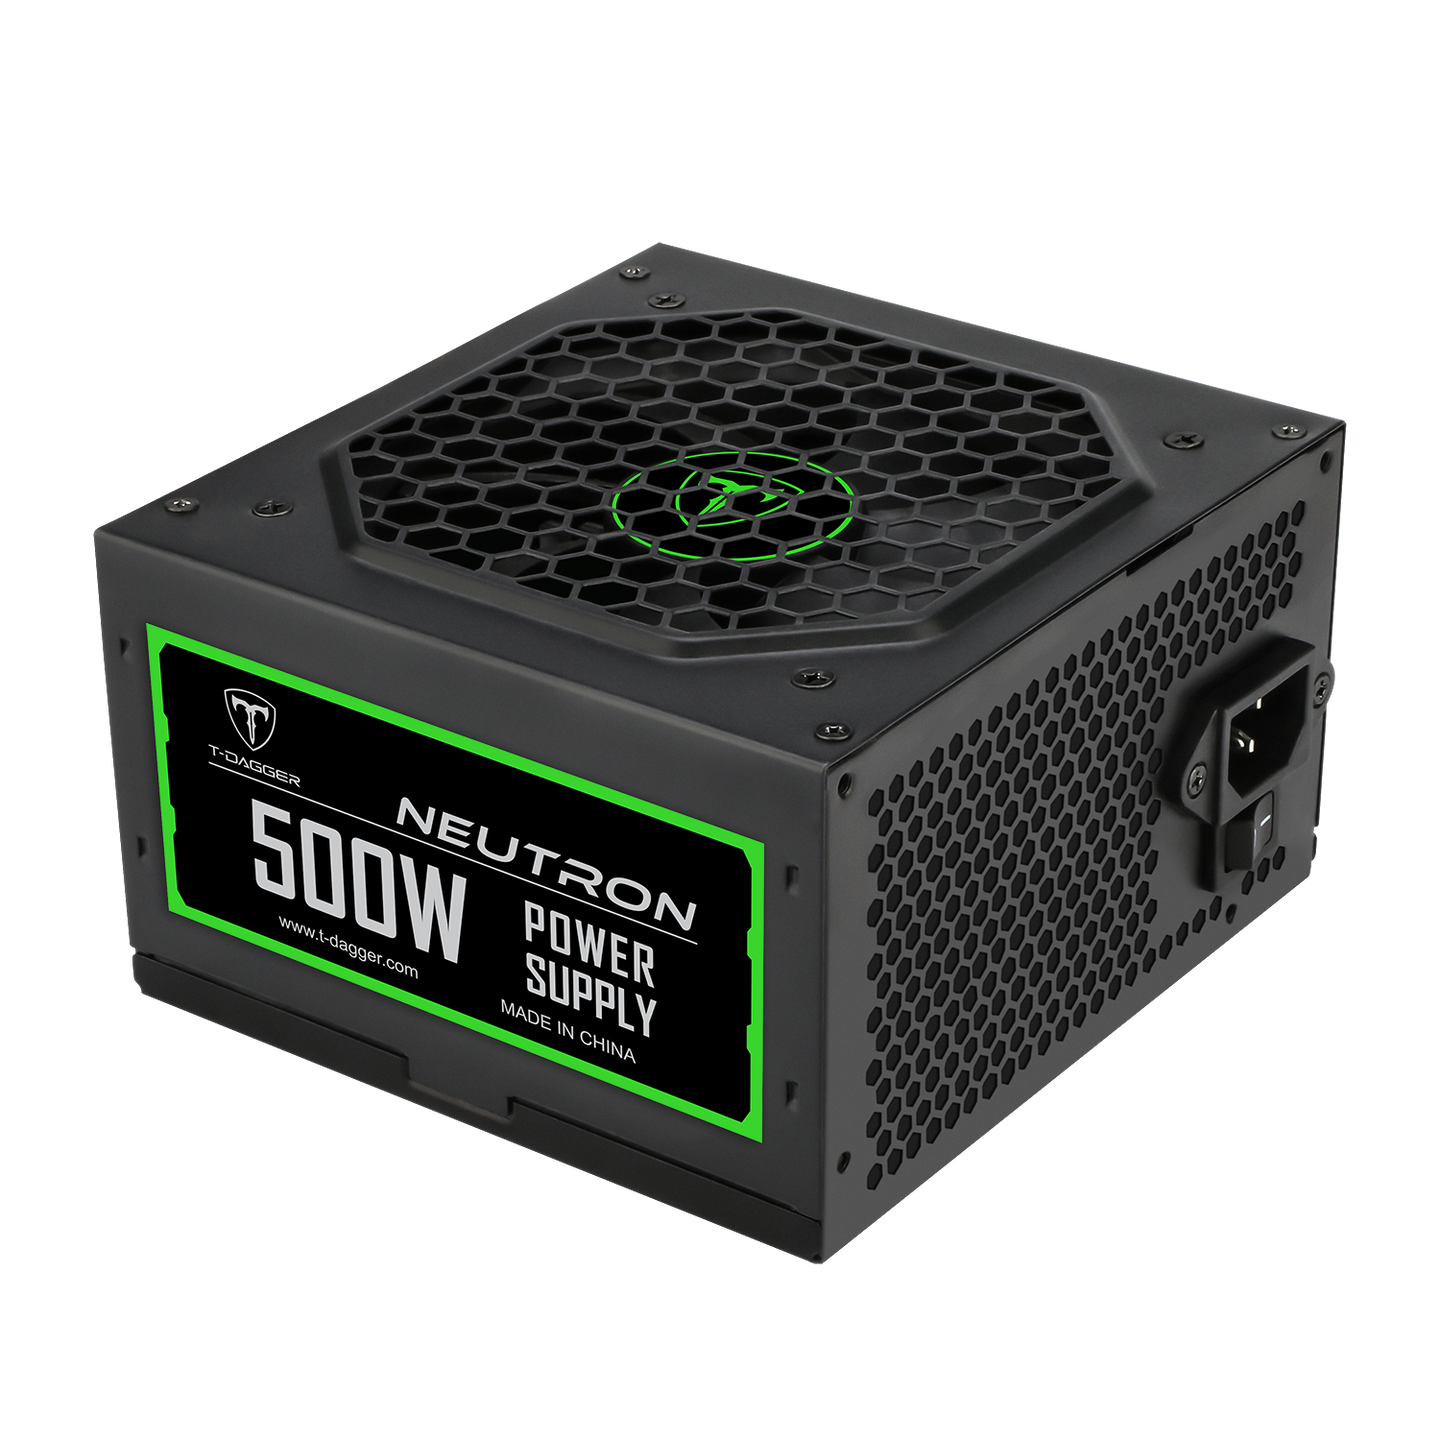 T-DAGGER T-TPS200 500W Power Supply